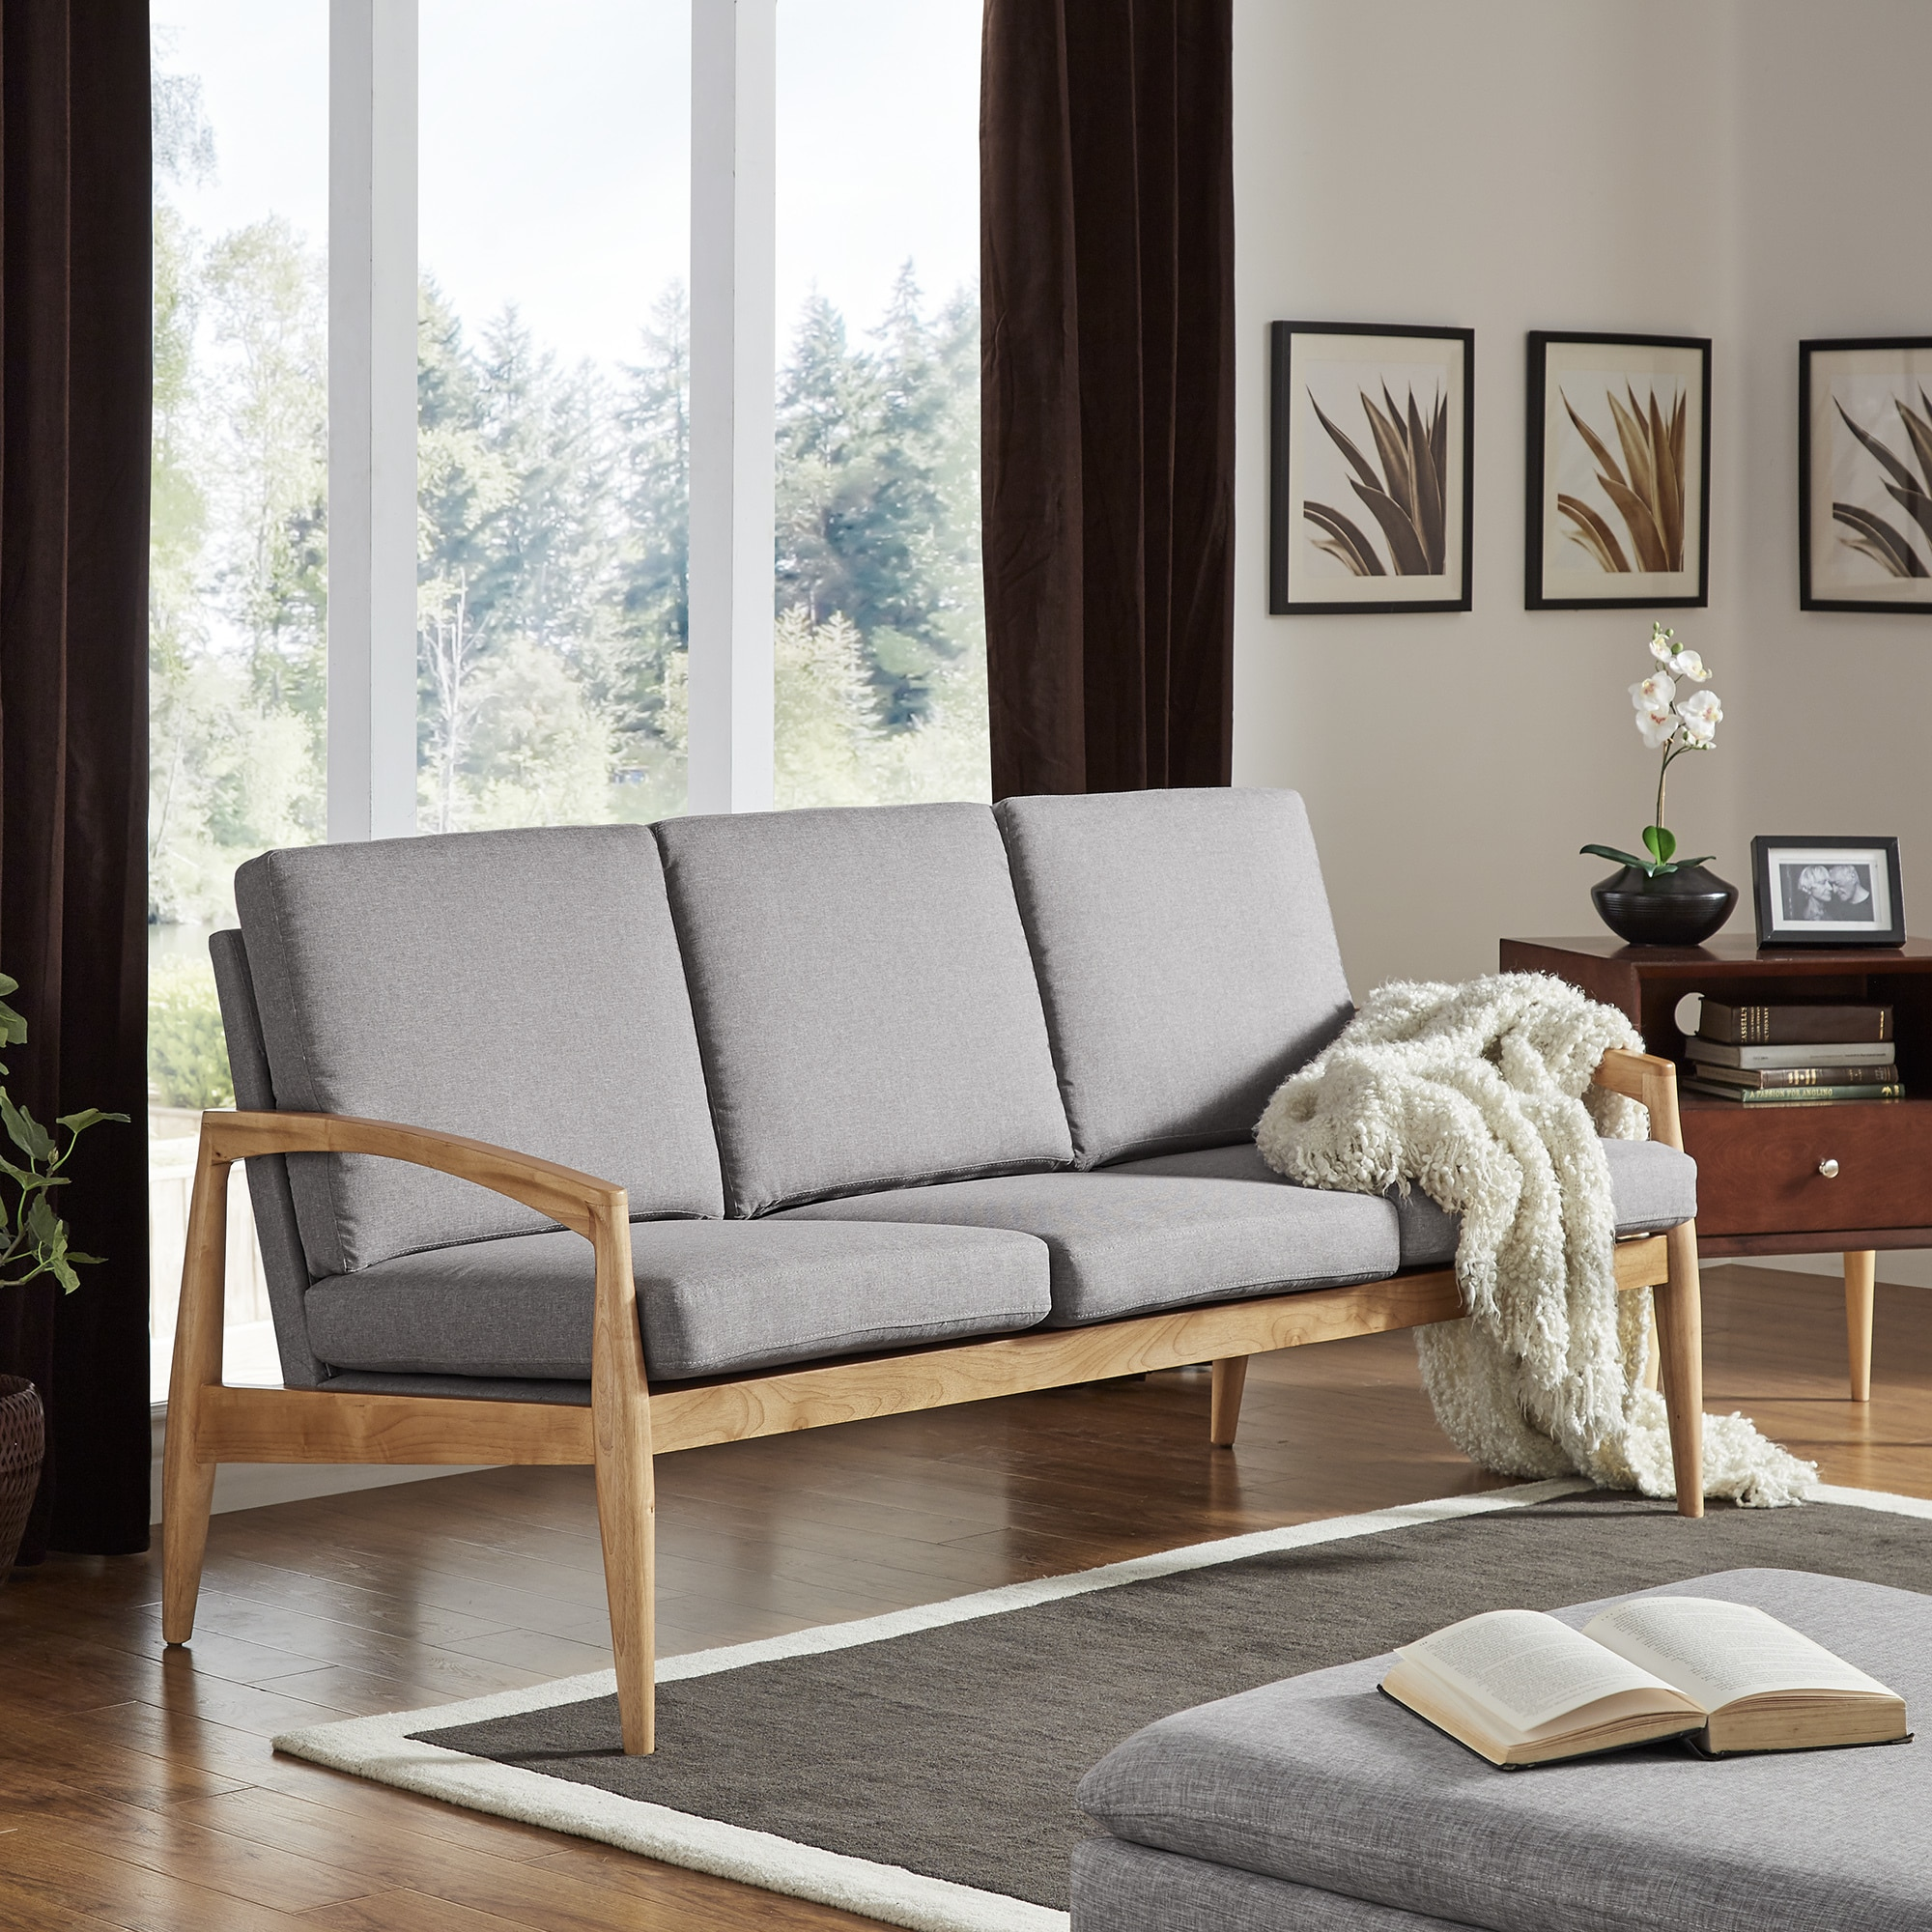 Grayson Mid-Century Curved Wood Arm Sofa by iNSPIRE Q Modern - Free  Shipping Today - Overstock.com - 23440478